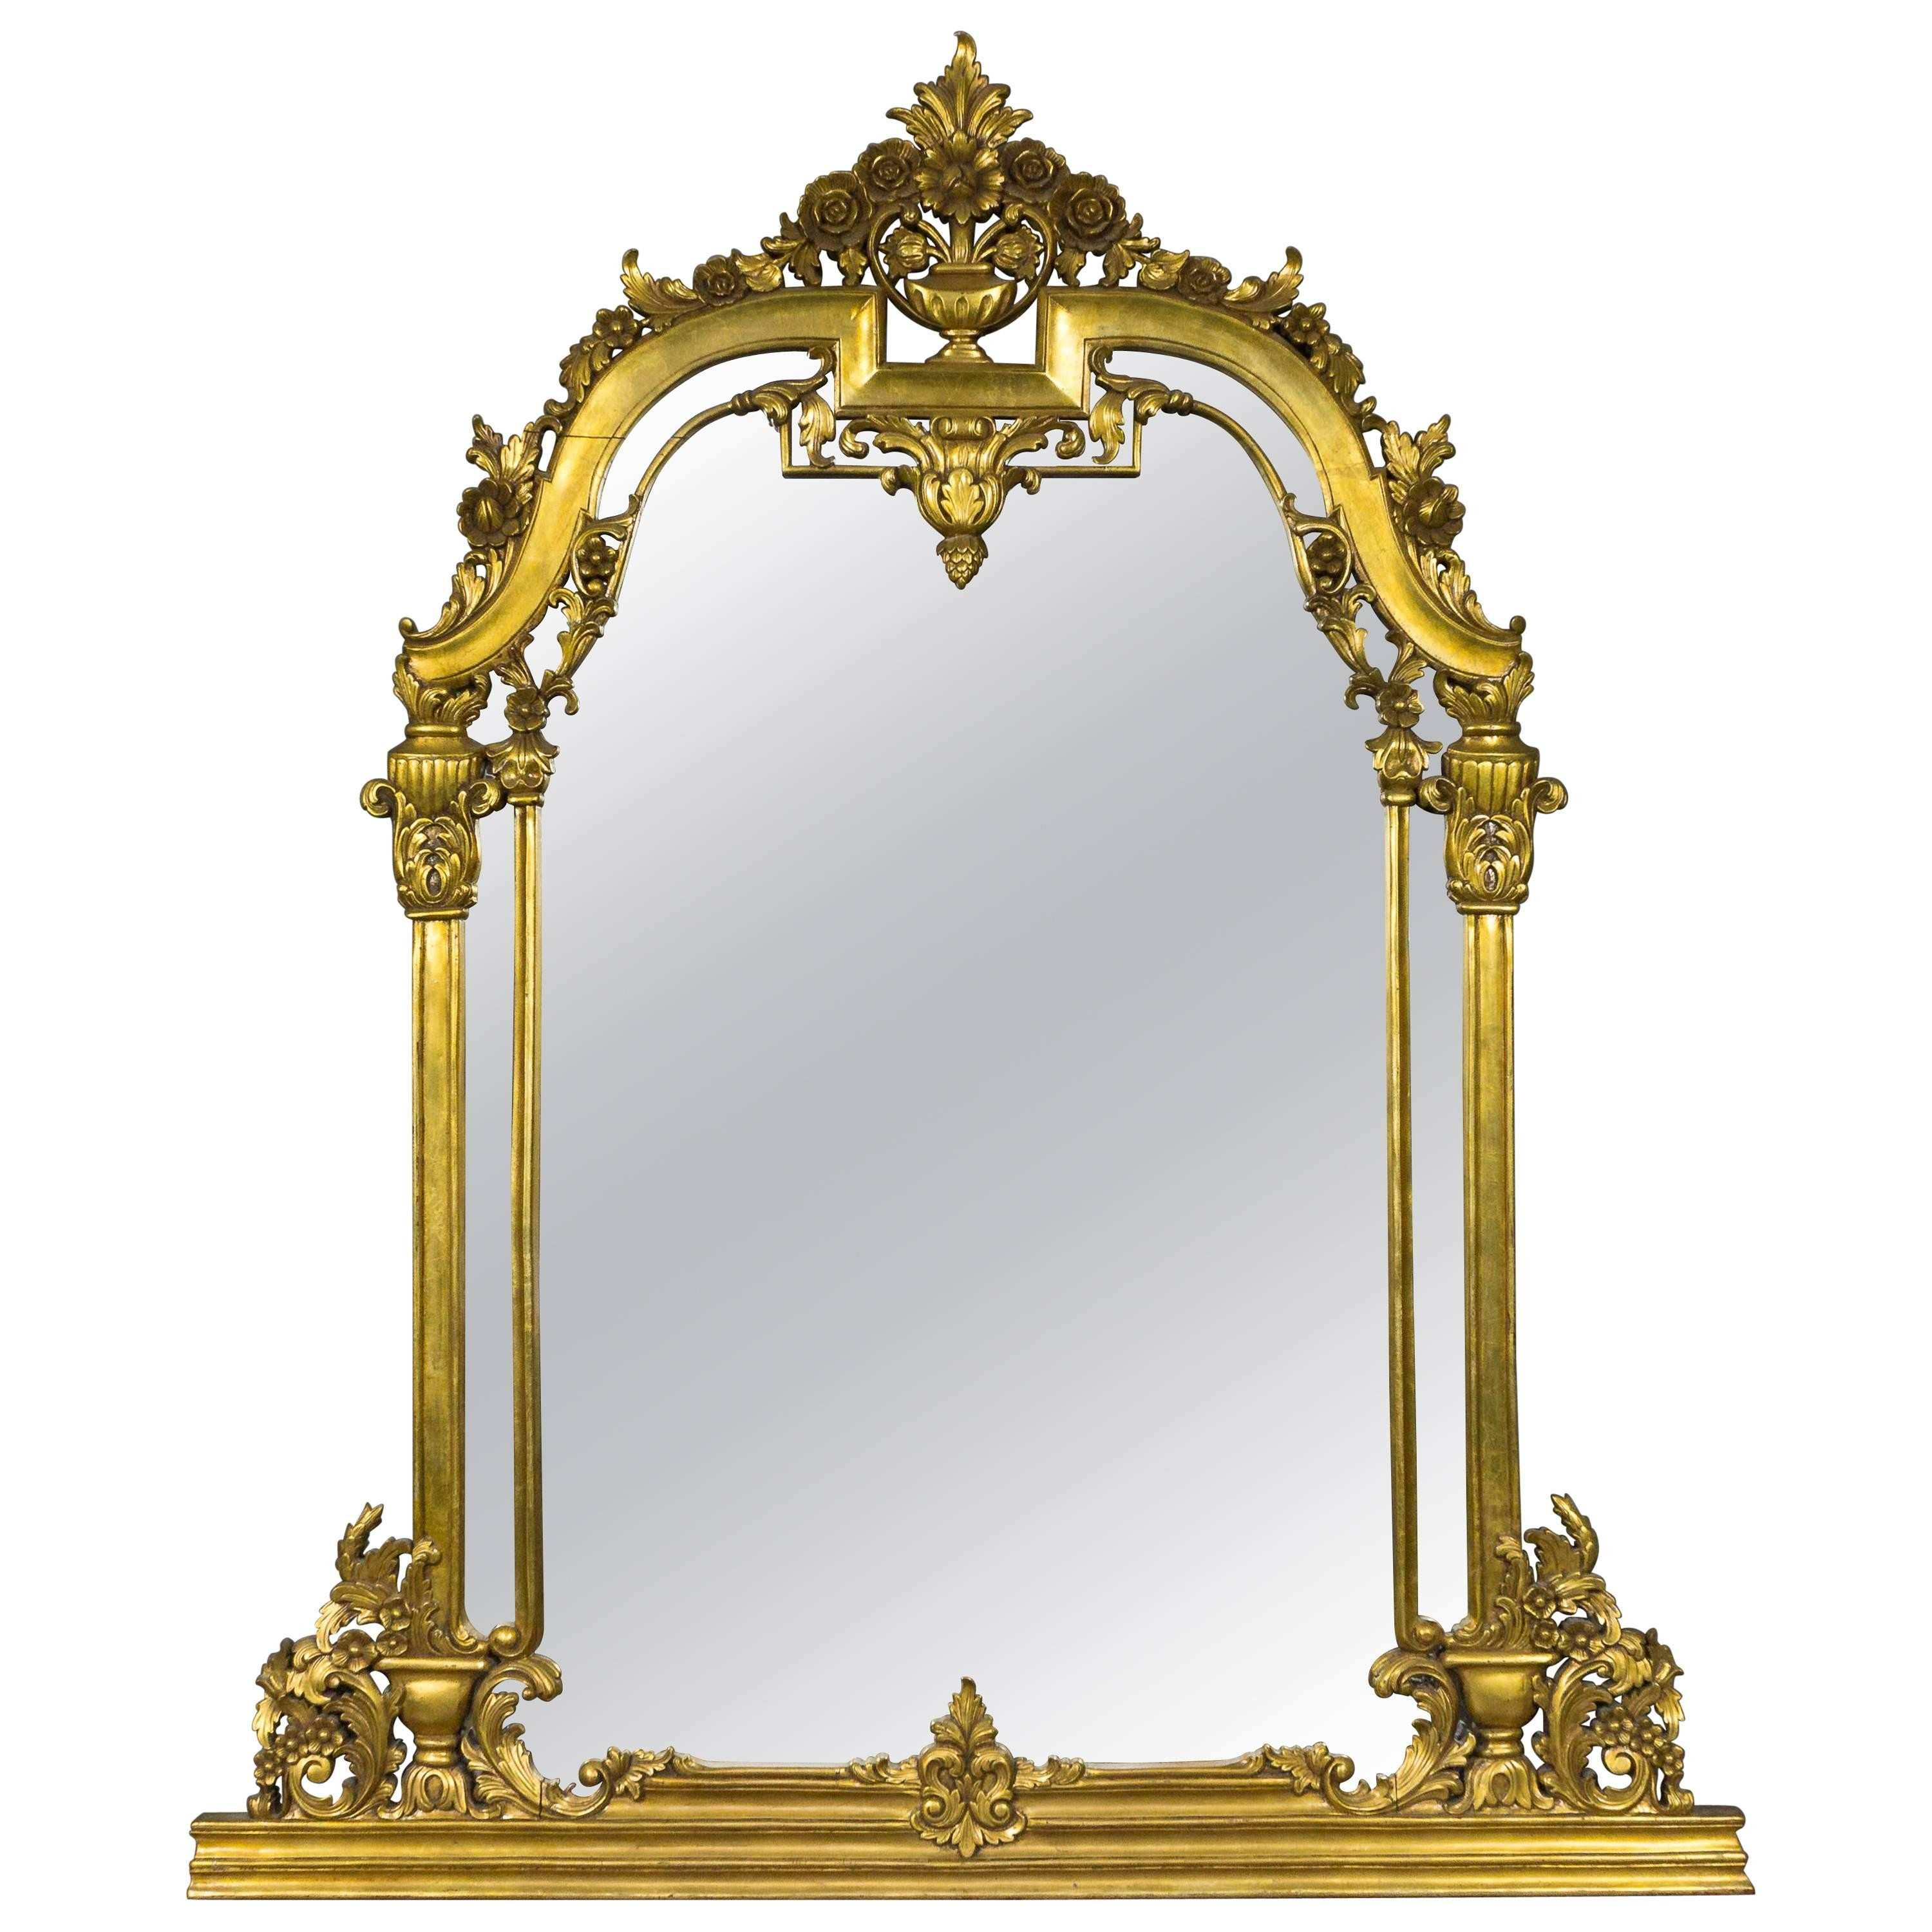 Renaissance Revival Mirror in the Manner of Herter Brothers at 1stdibs